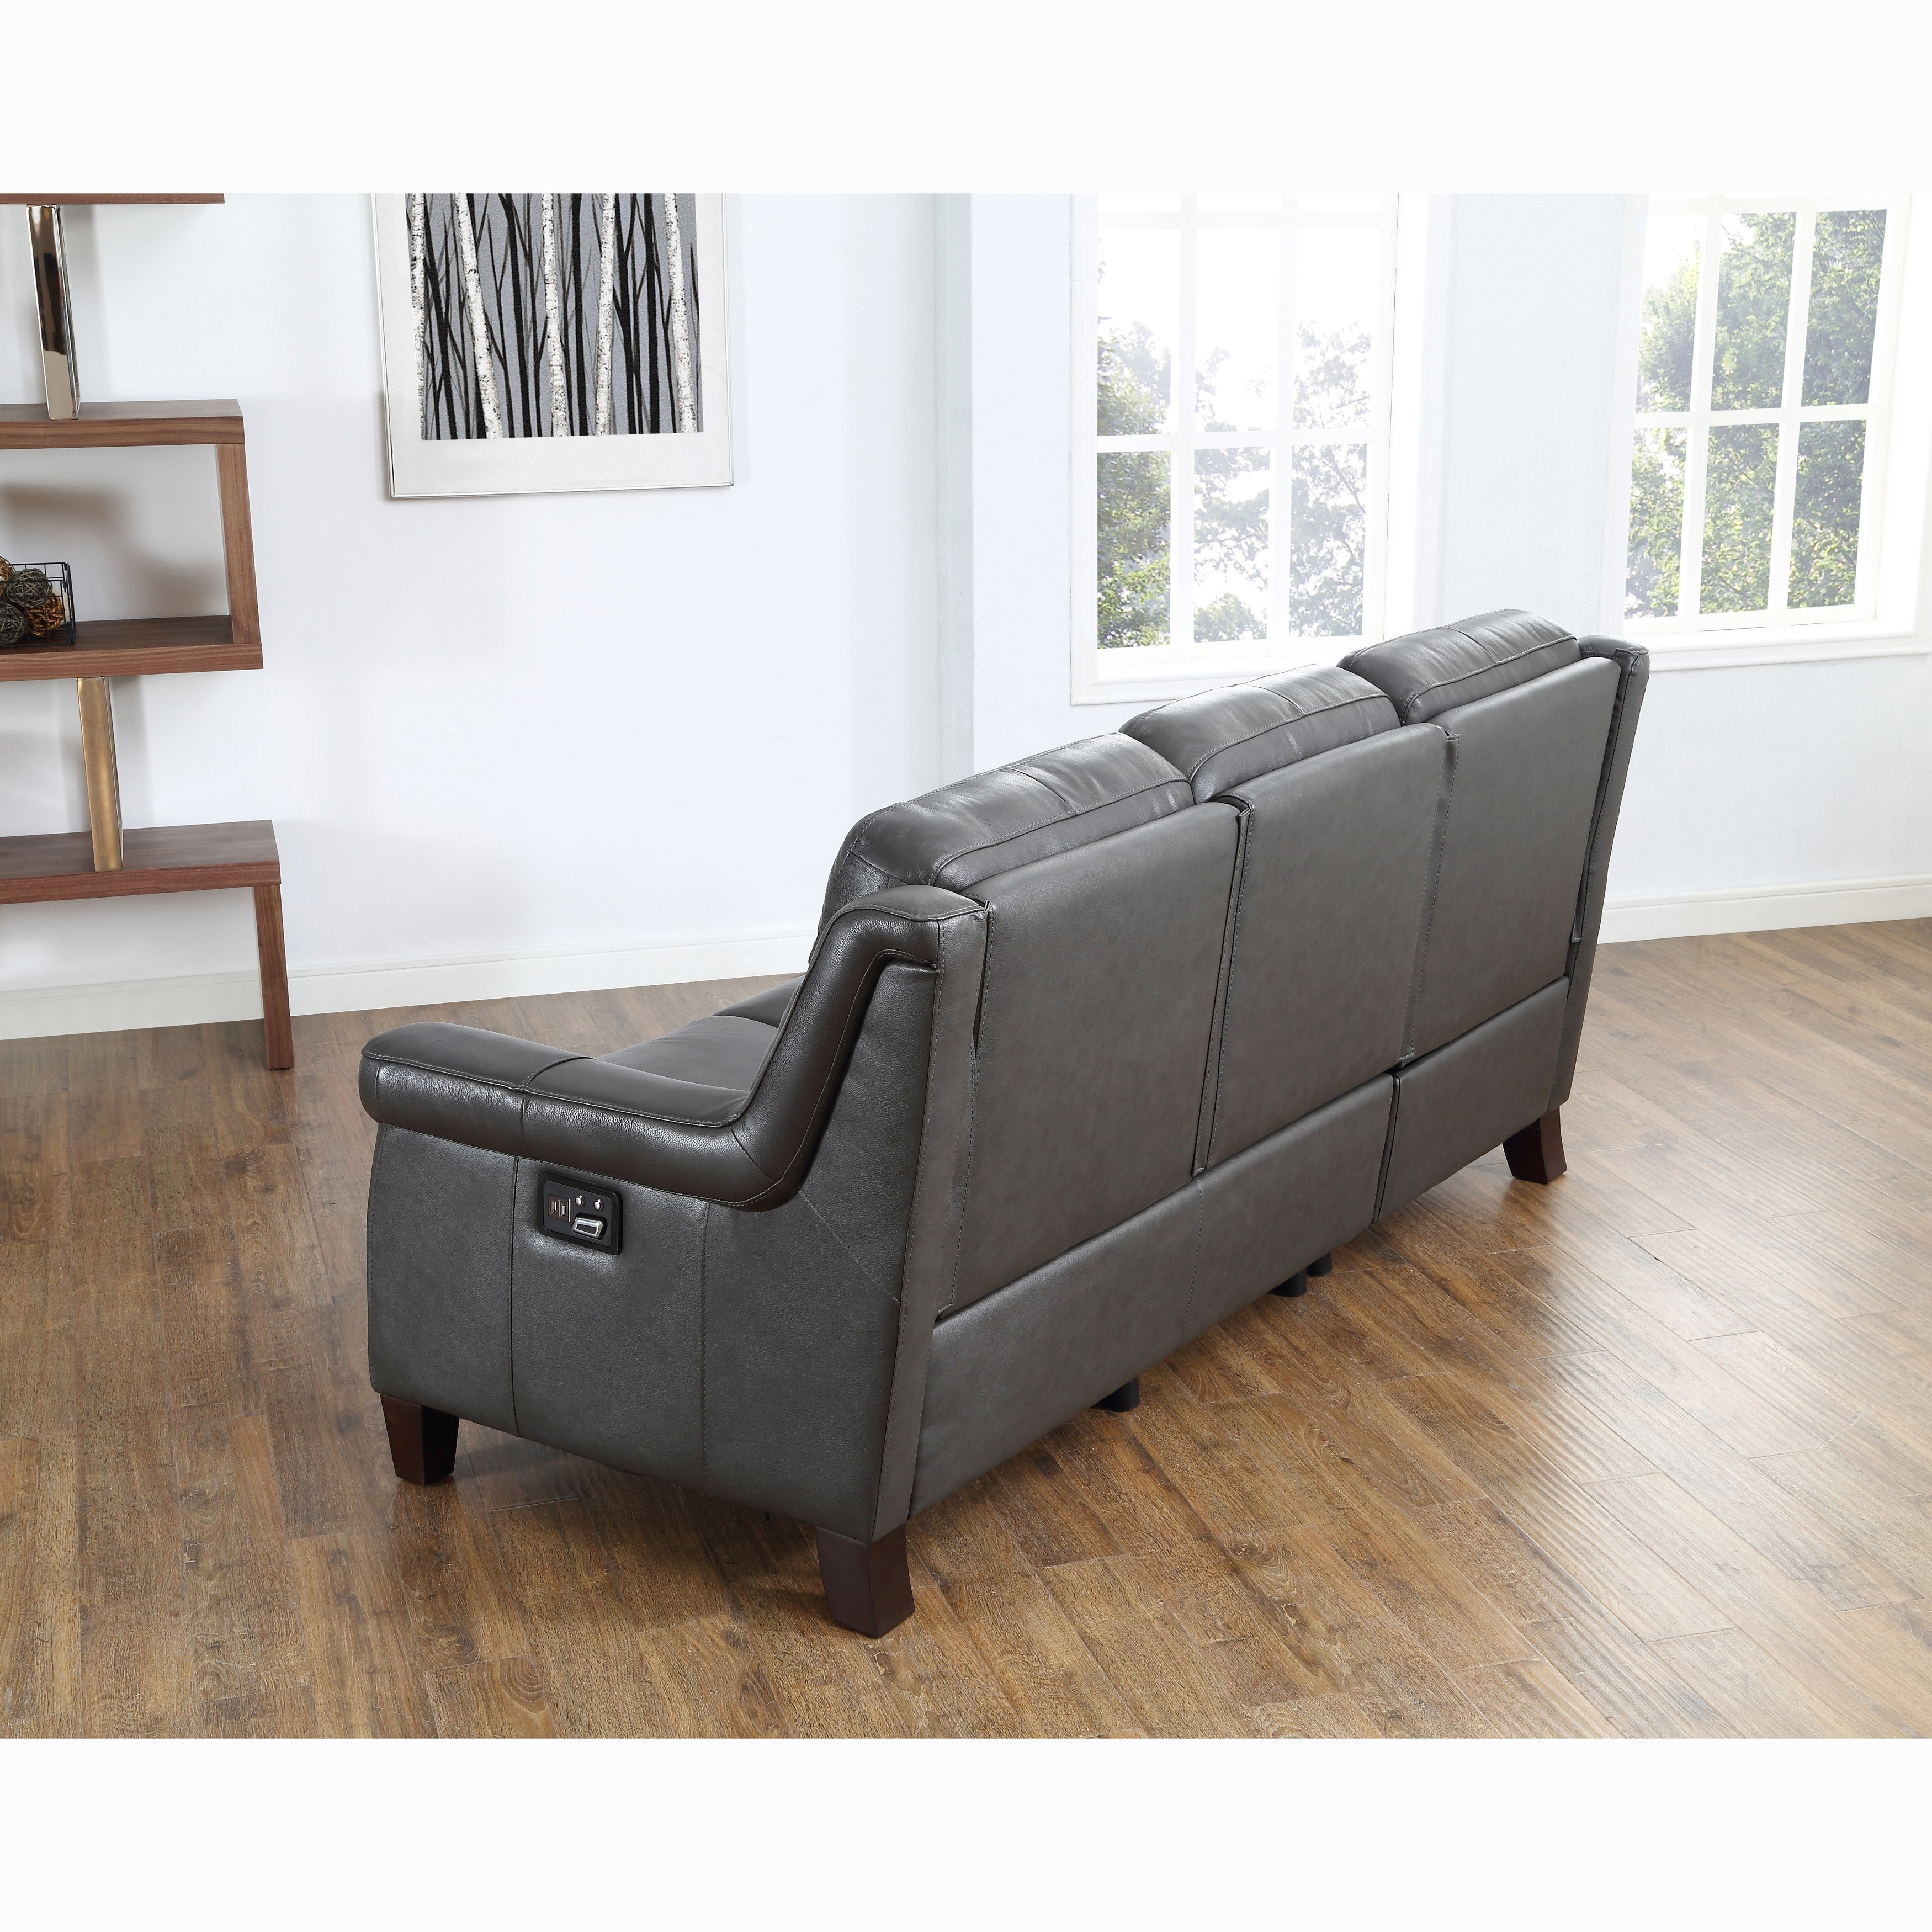 Grey Leather Power Reclining Sofa – Review Home Decor throughout Clyde Grey Leather 3 Piece Power Reclining Sectionals With Pwr Hdrst & Usb